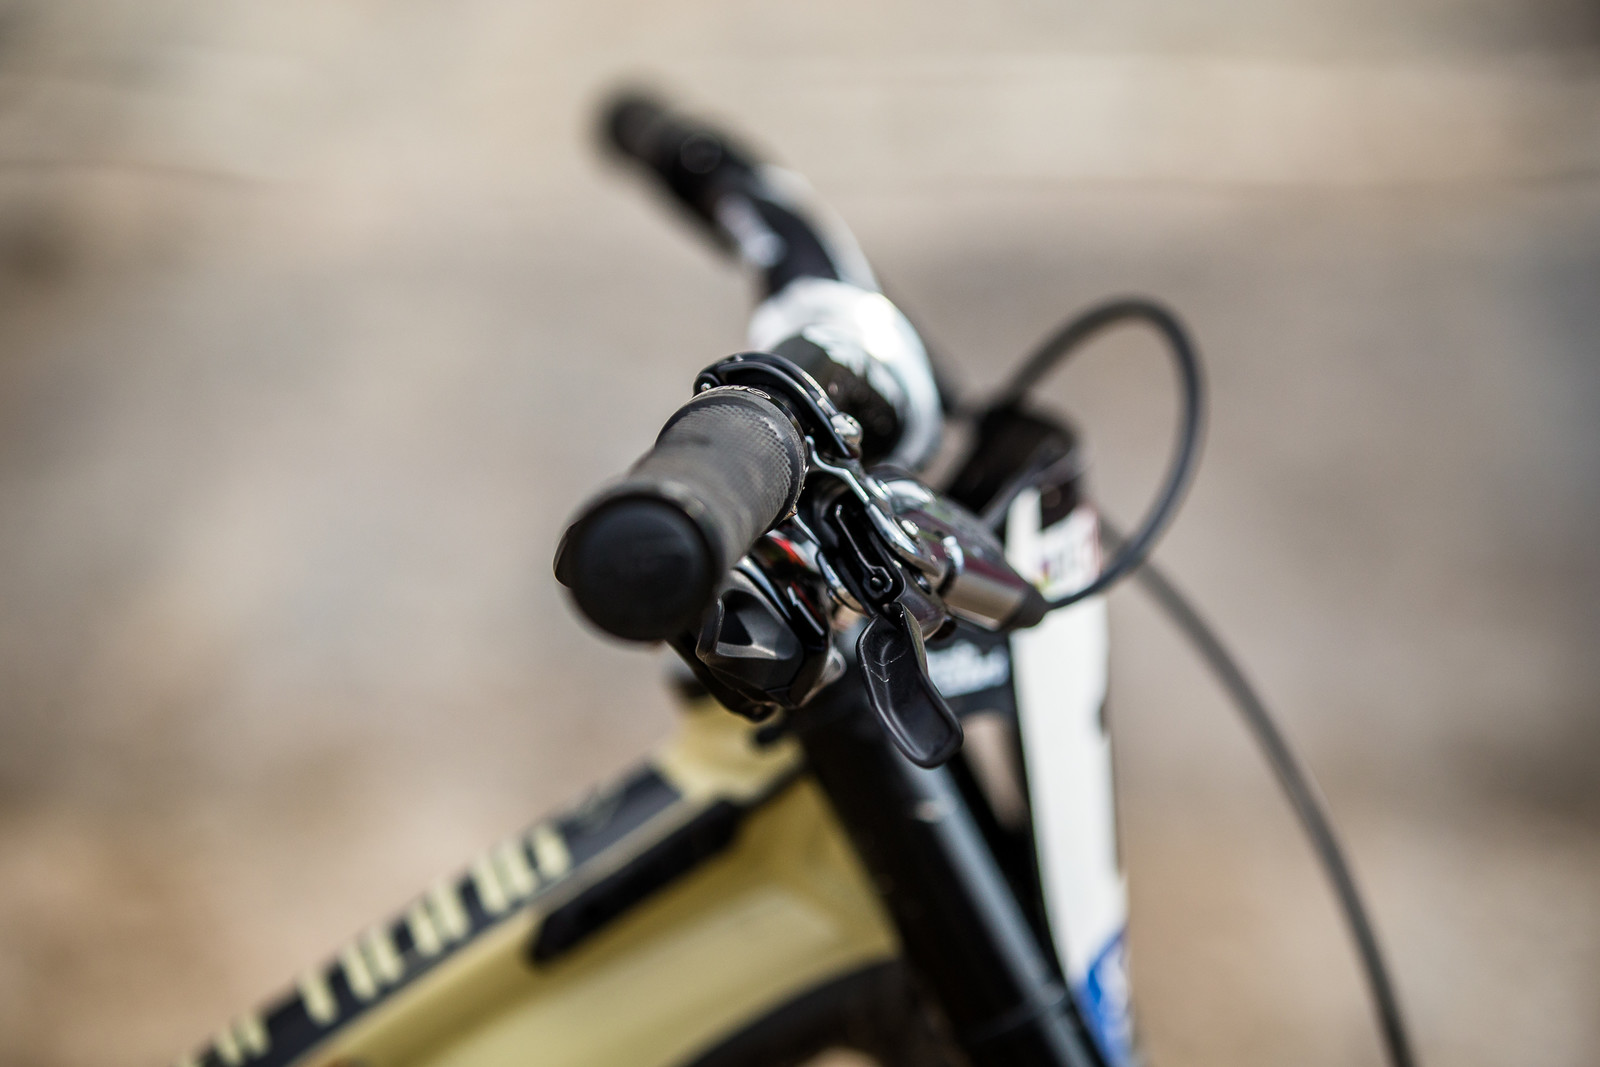 Steeper Levers Than Most? - WINNING BIKE - Amaury Pierron's Commencal Supreme DH 29 - Mountain Biking Pictures - Vital MTB